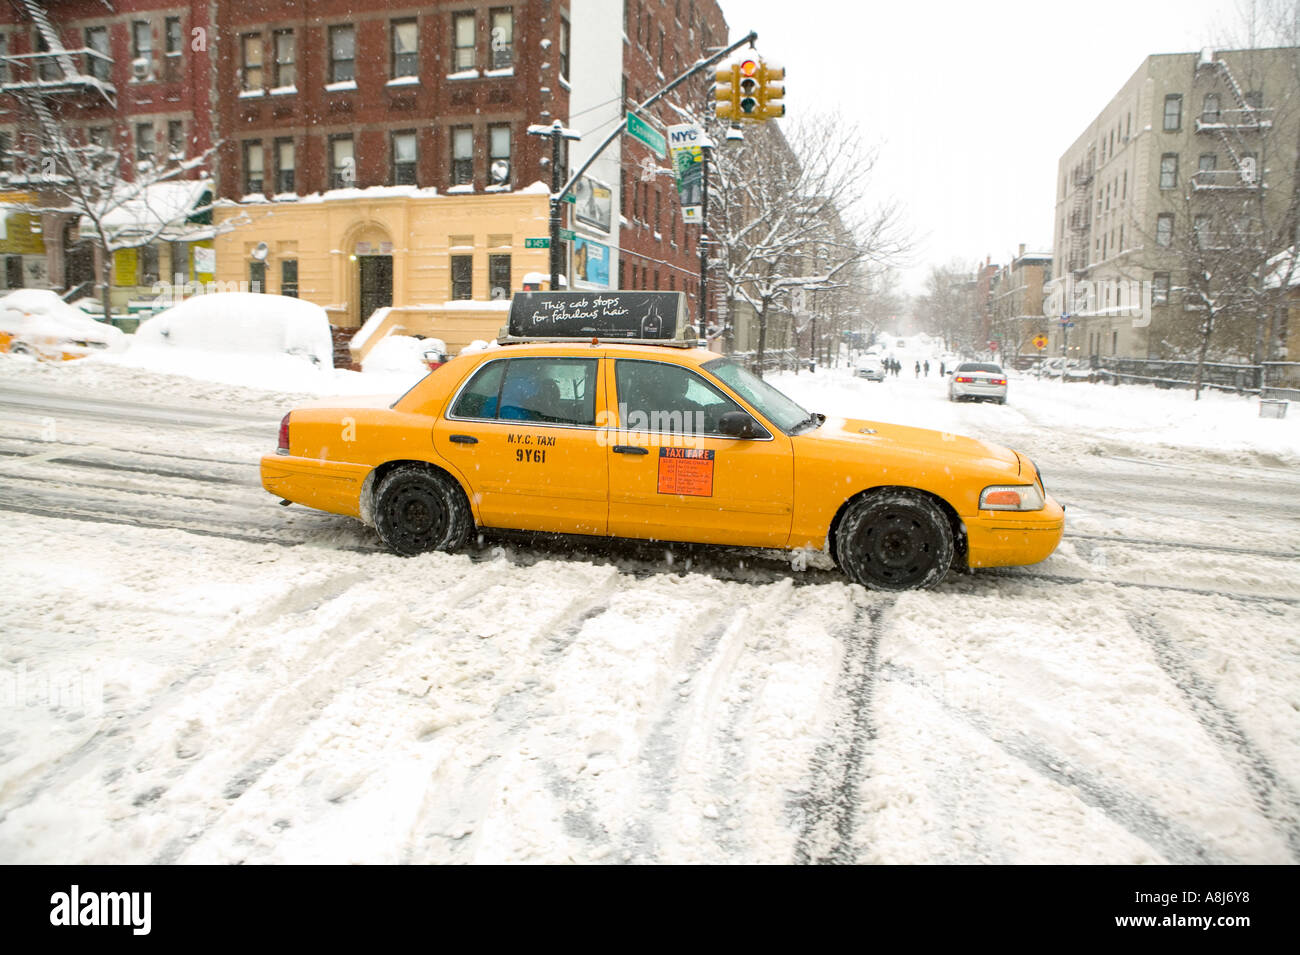 A yellow cab drives through a snow covered street in Harlem after a blizzard in New York City USA February 2006 - Stock Image